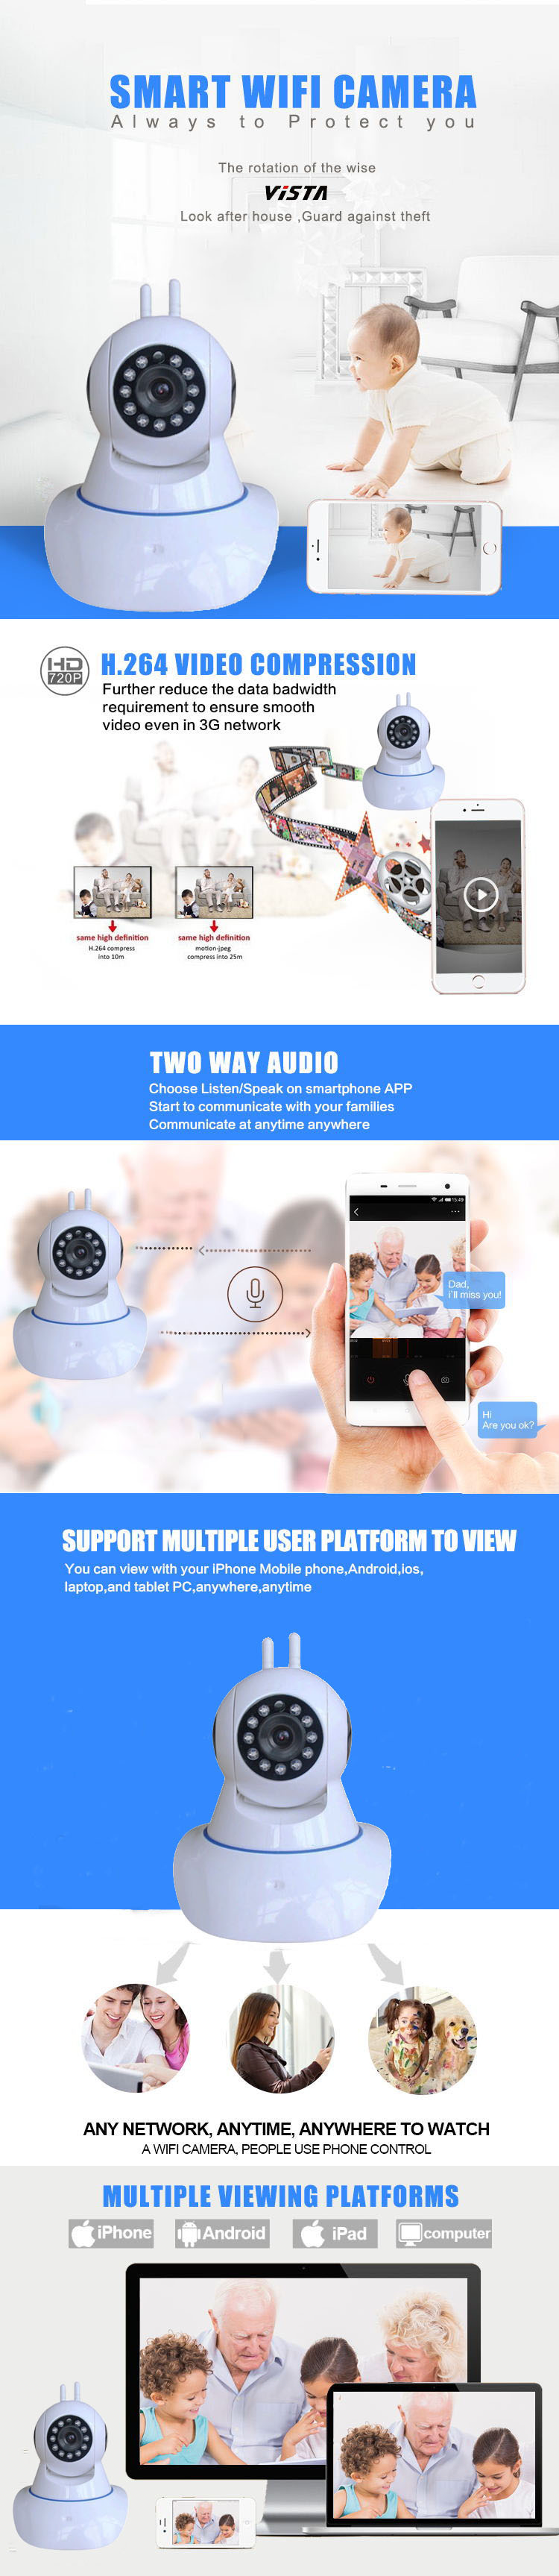 2 way talk ip camera